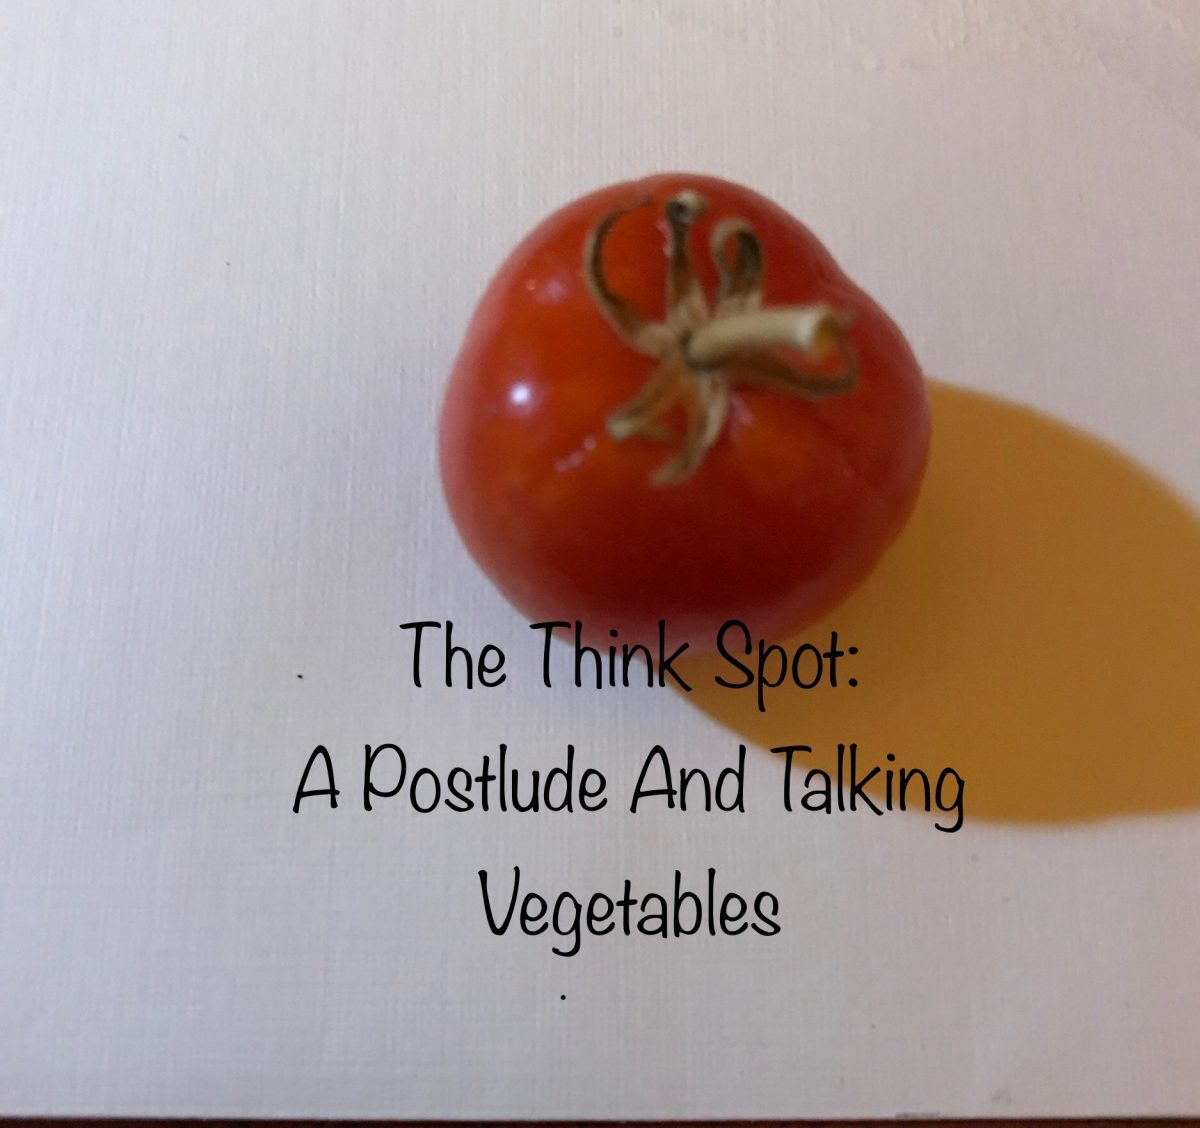 Photo of a tomato by Pastor Bo Wagner, admirer of the Veggie Tales!